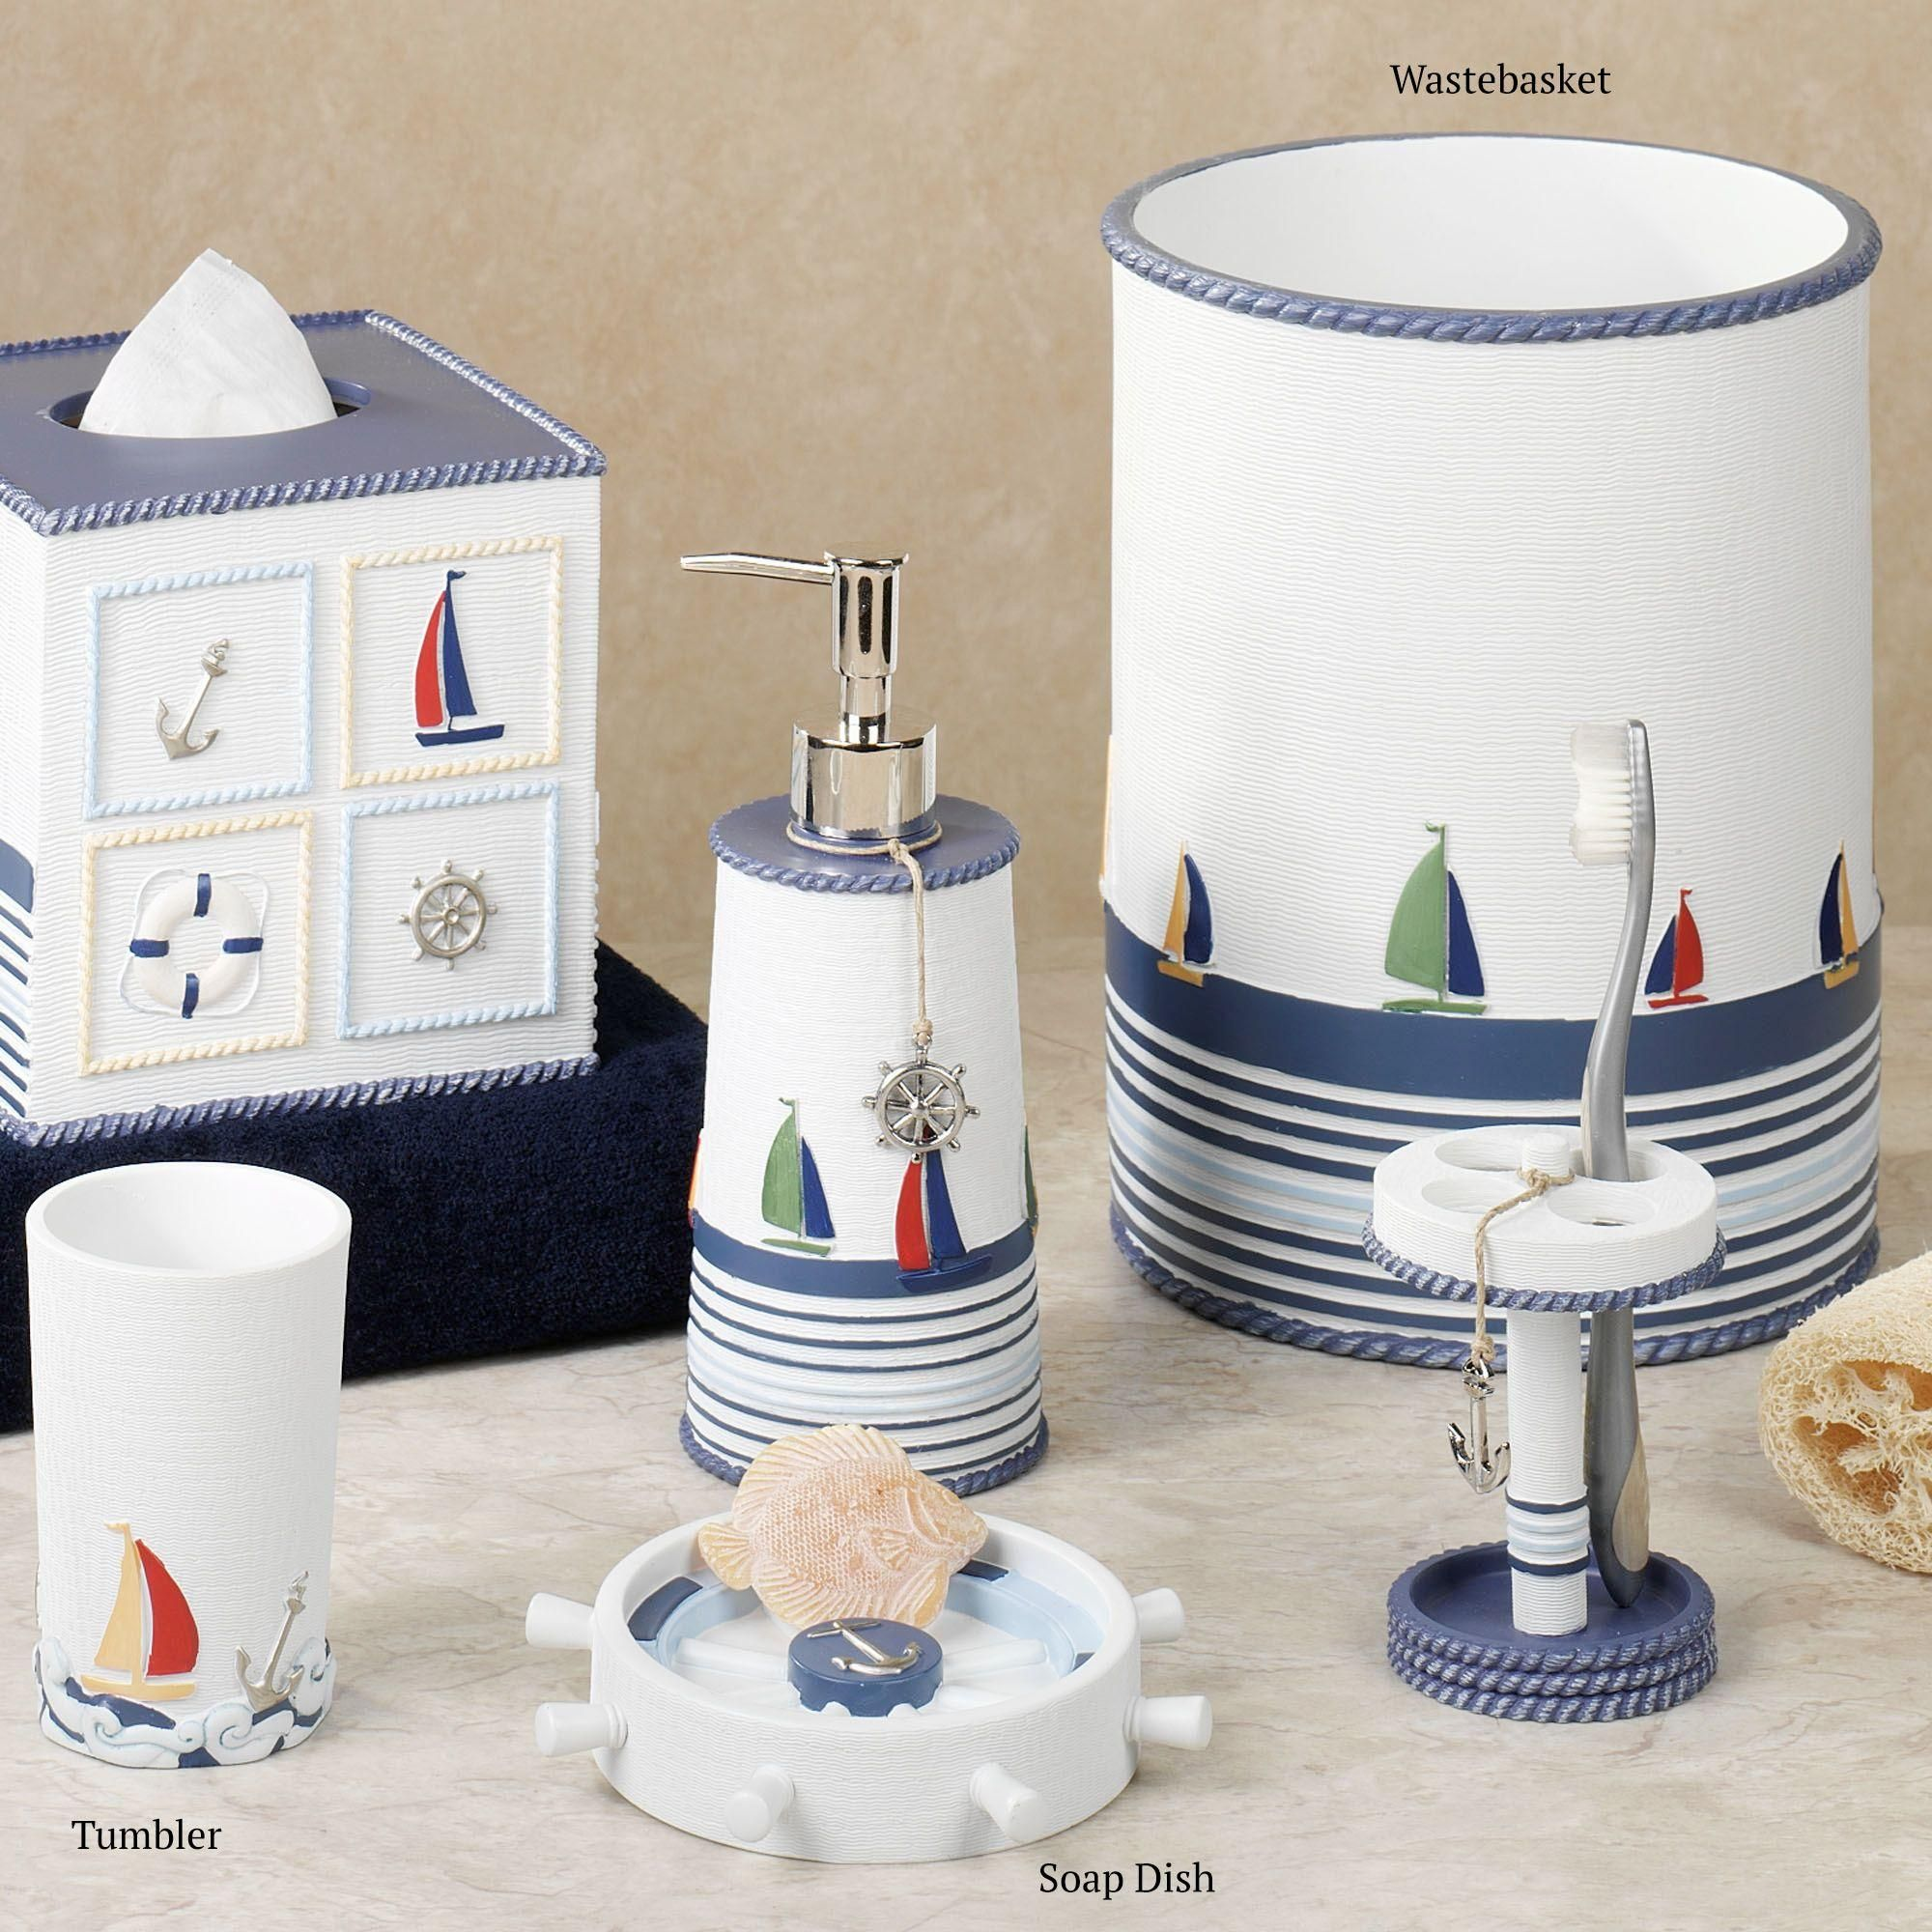 Nautical Bathroom Accessories Part 1 - Home > Regatta Nautical Bath ...